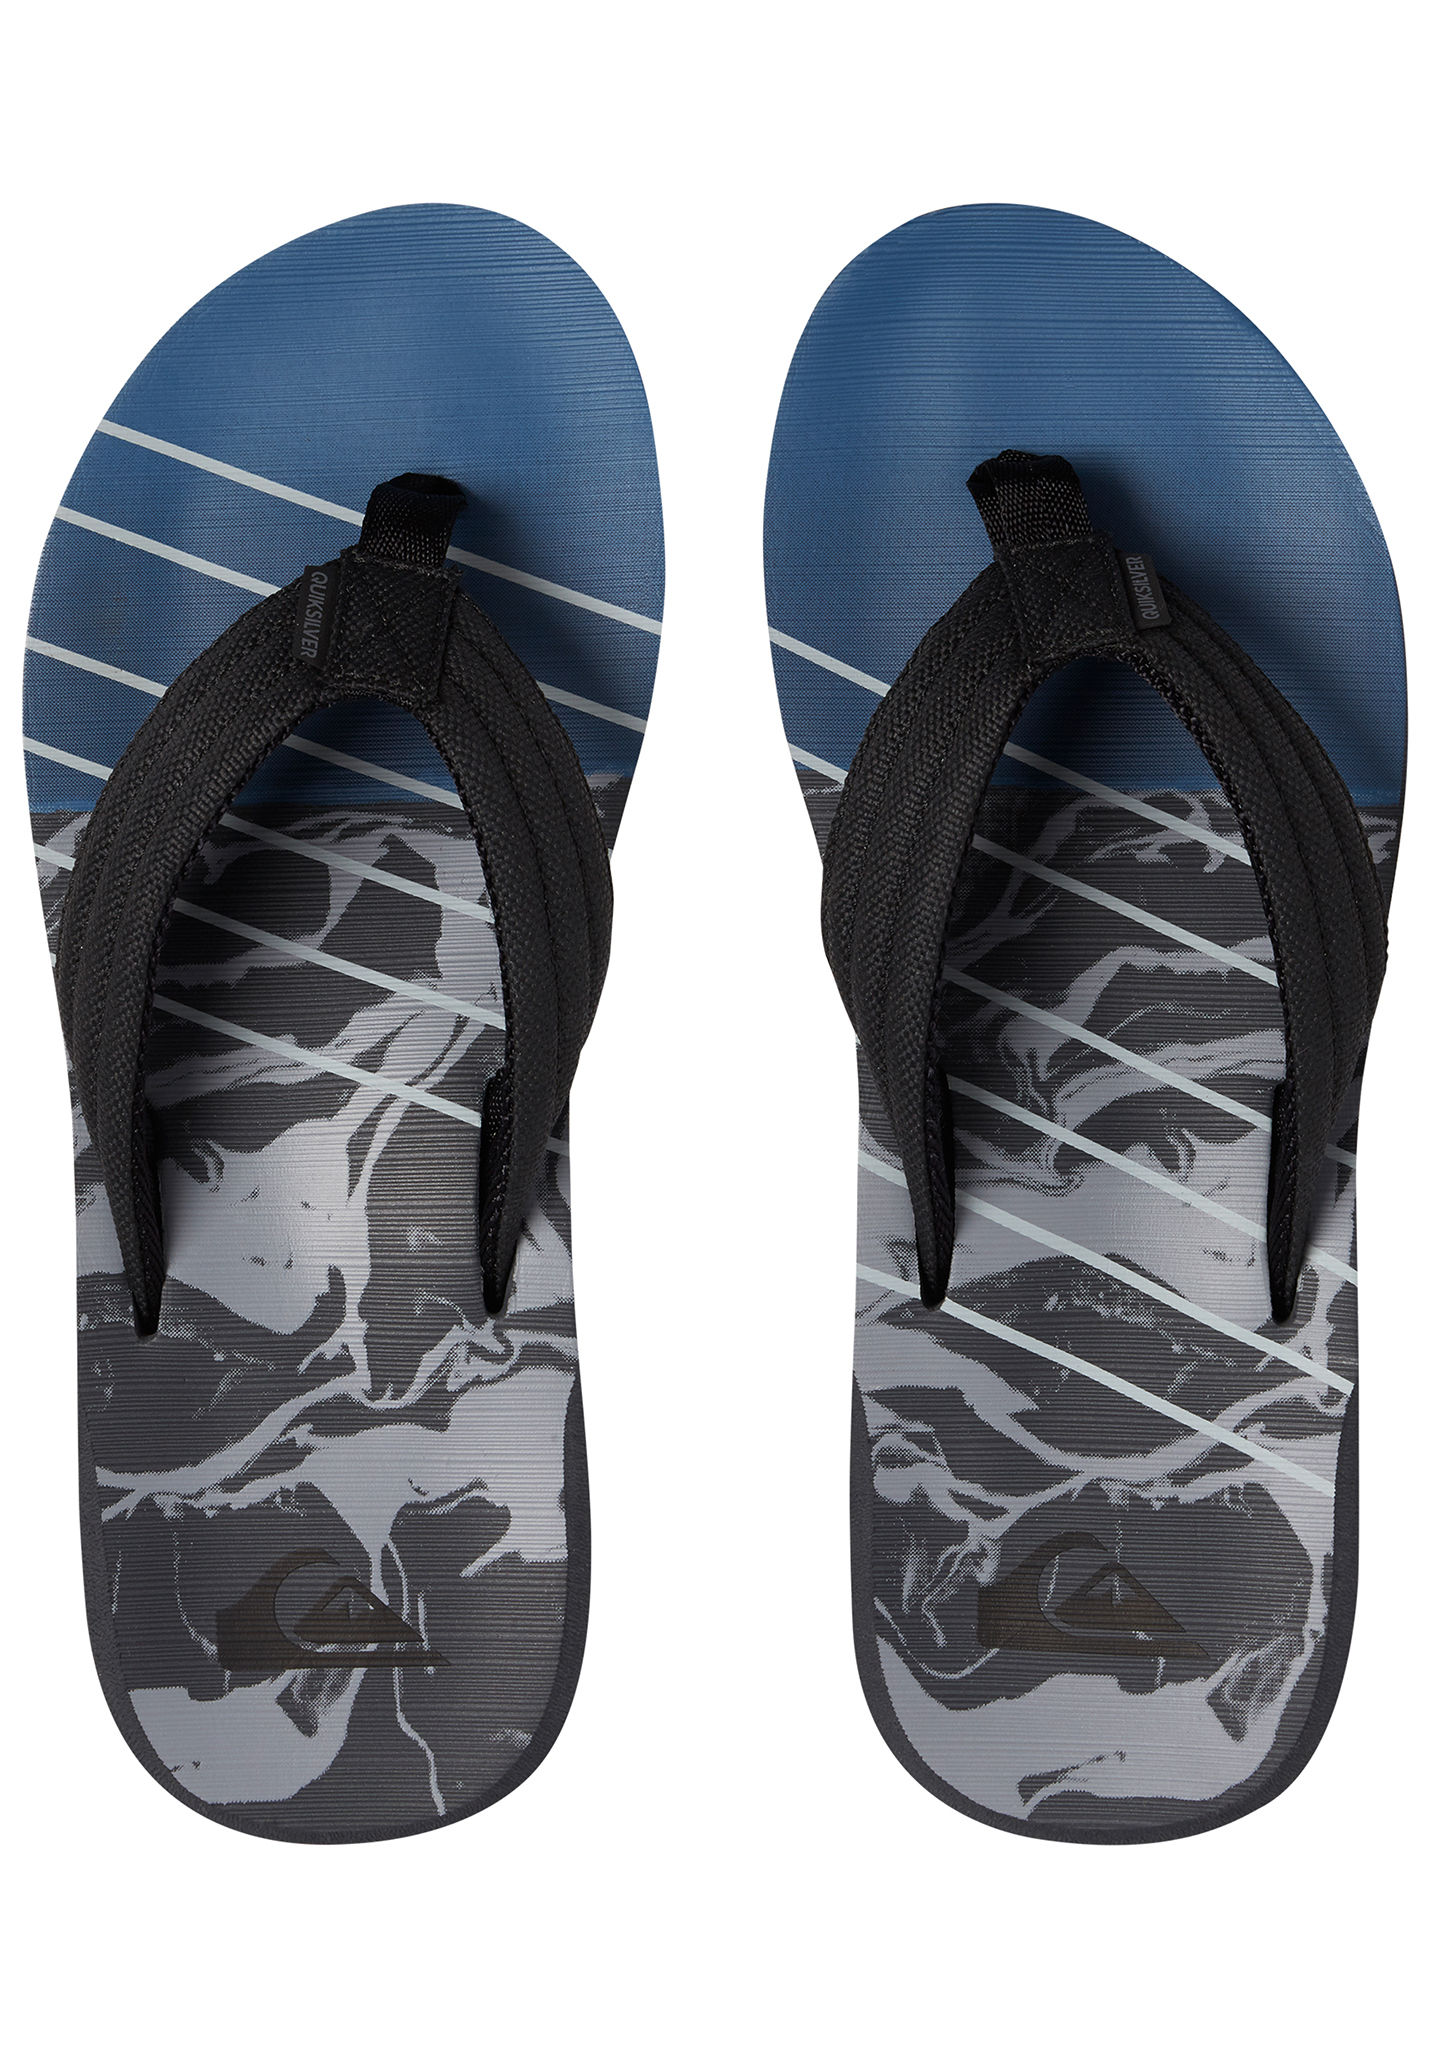 53a691e346 Quiksilver Carver Print - Sandals for Men - Black